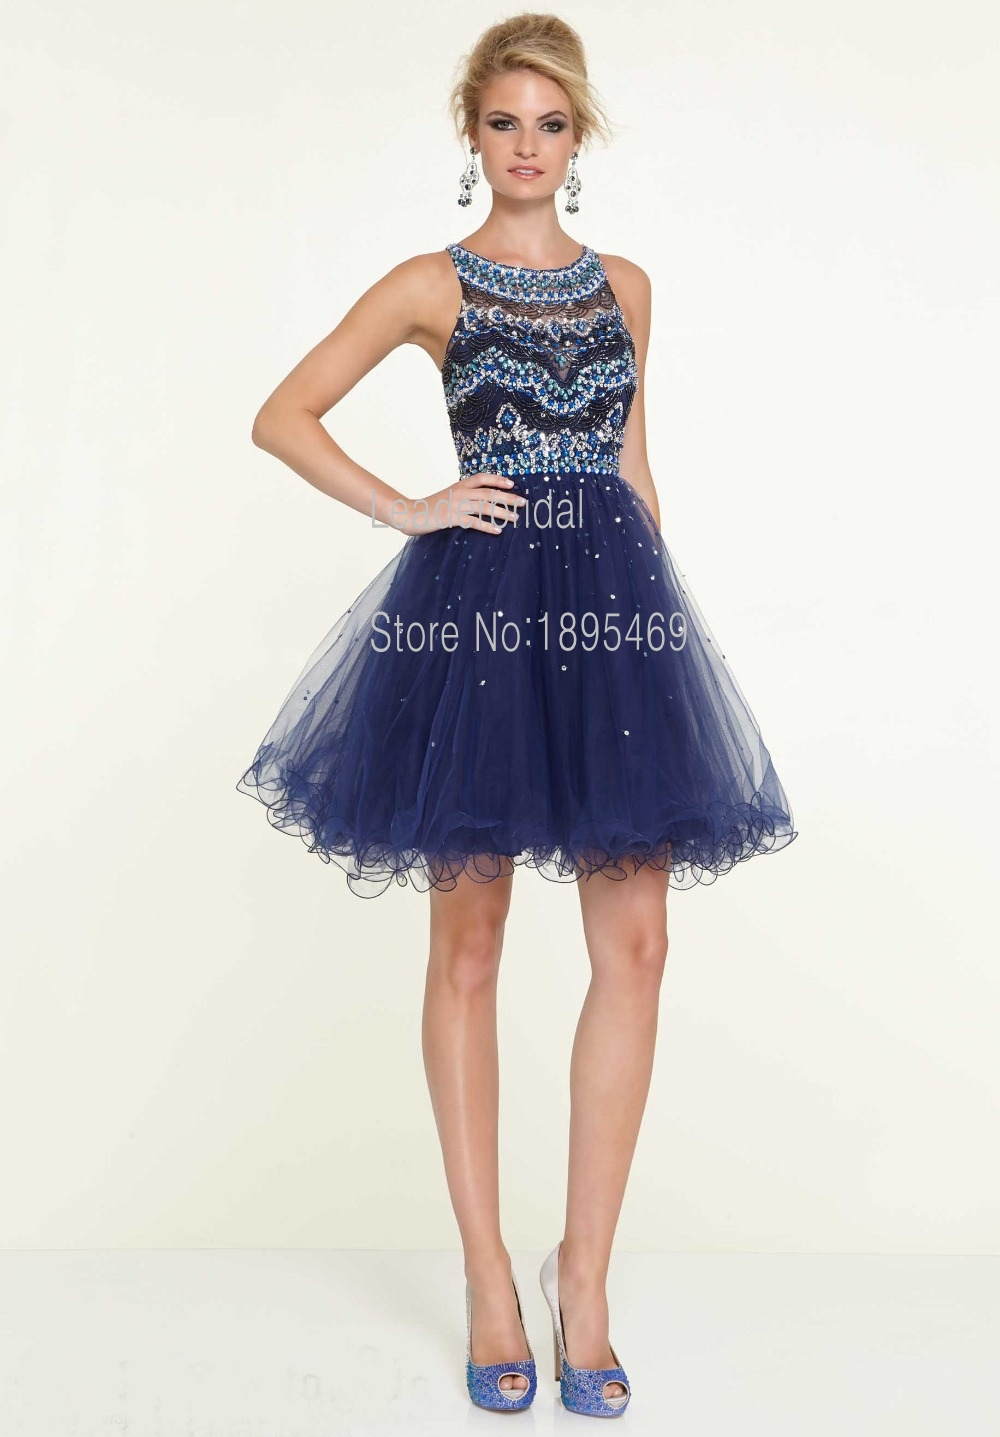 Online Buy Wholesale blue sequin cocktail dress from China blue ...